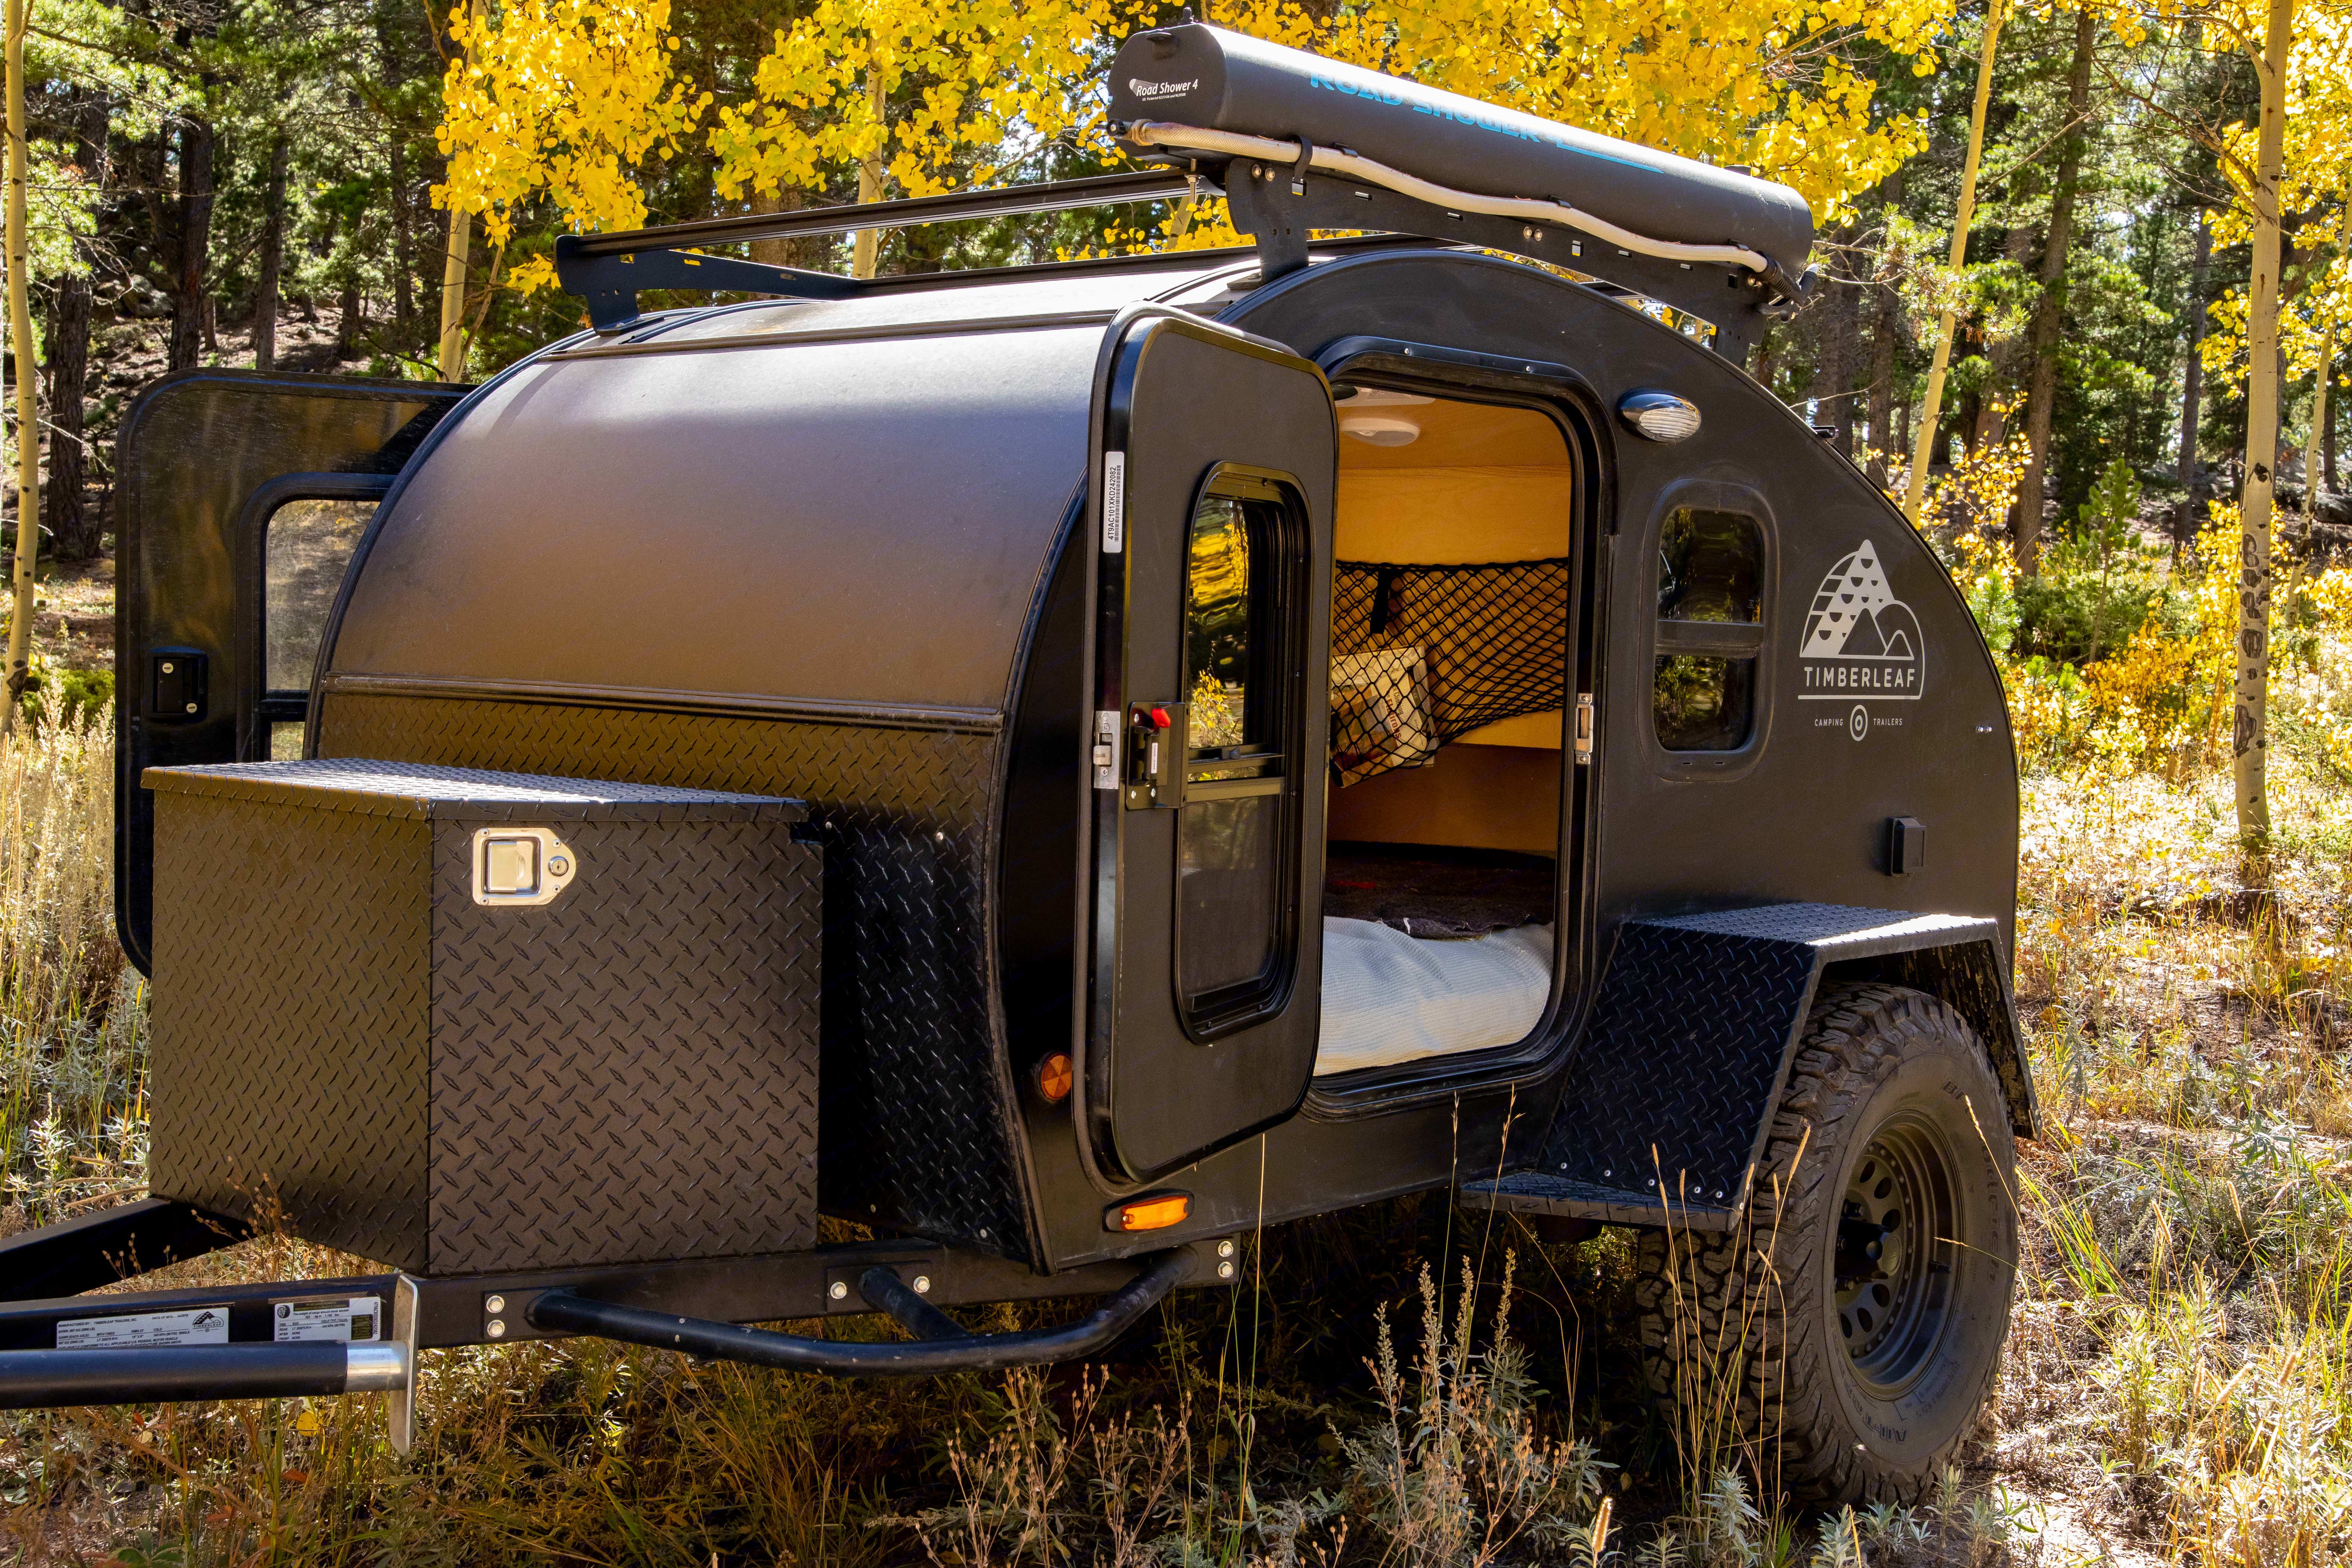 The lock box and rack add additional storage for all your adventure gear needs, while the road shower can be used to wash off yourself, gear, or even dishes after dinner. . Timberleaf Pika 2019